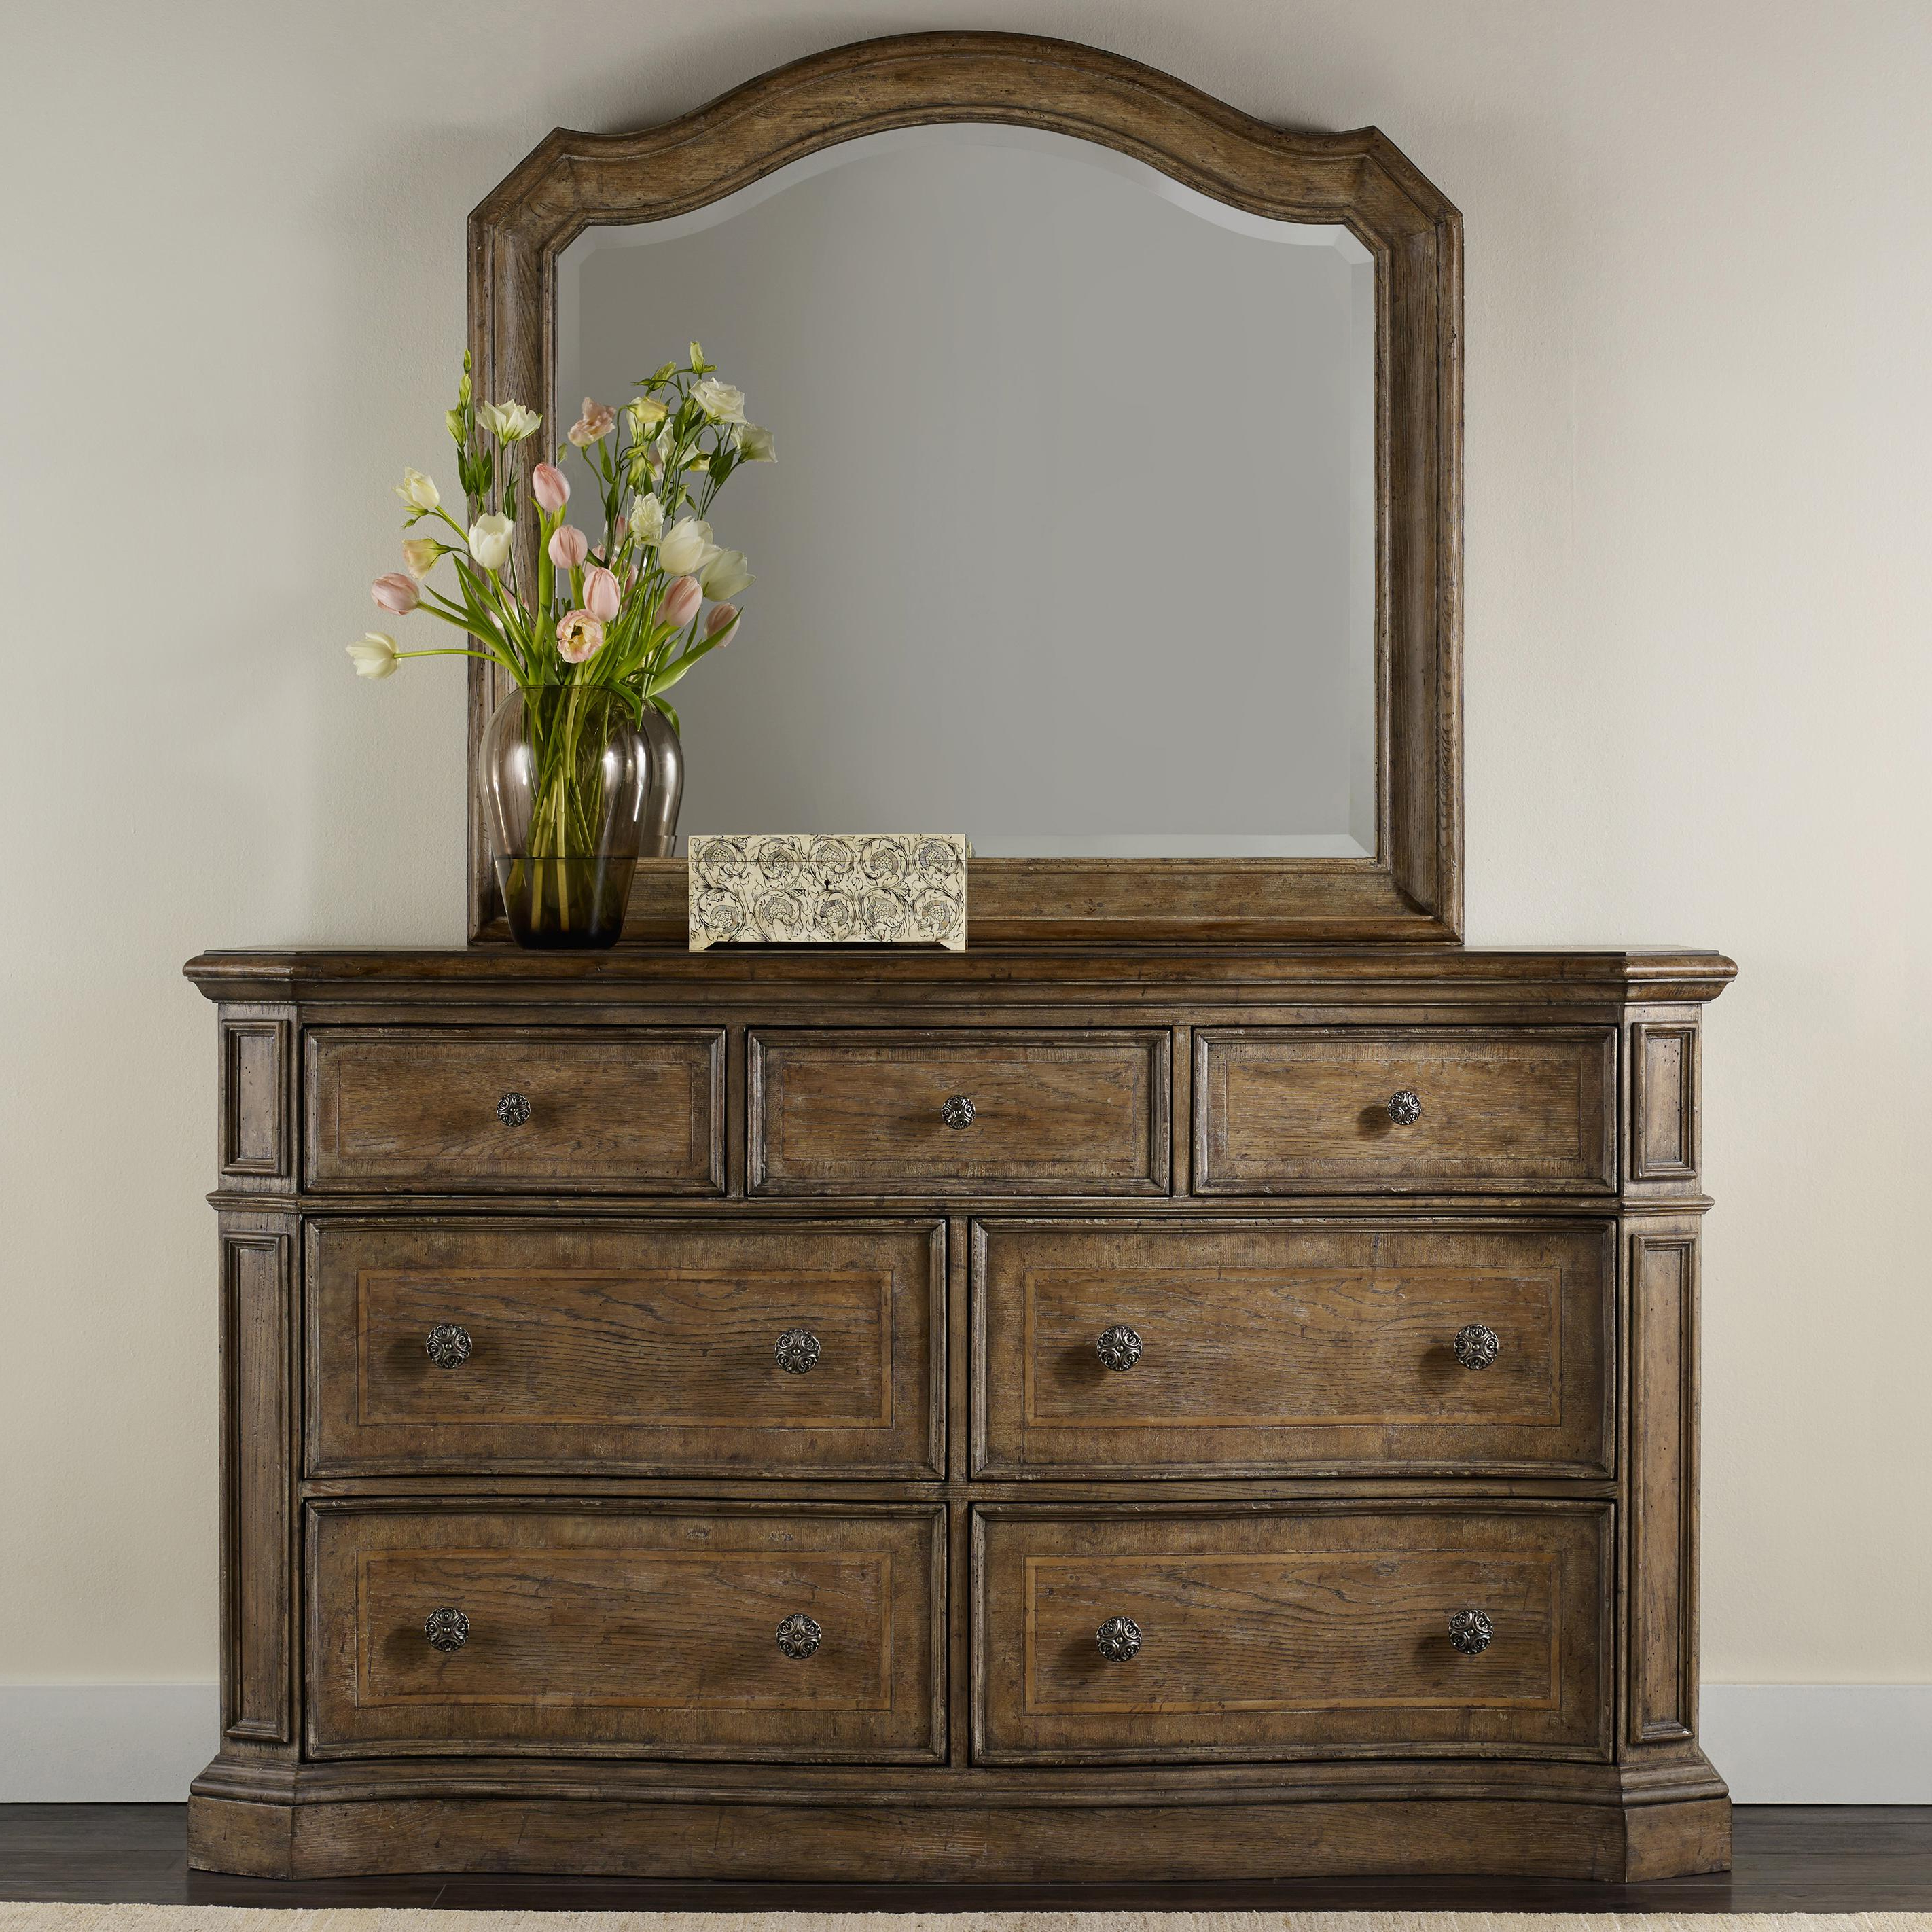 2019 Solana Sideboards With Regard To Solana 7 Drawer Dresser And Mirror Set With Serpentine Shapinghamilton  Home At Rotmans (View 2 of 20)